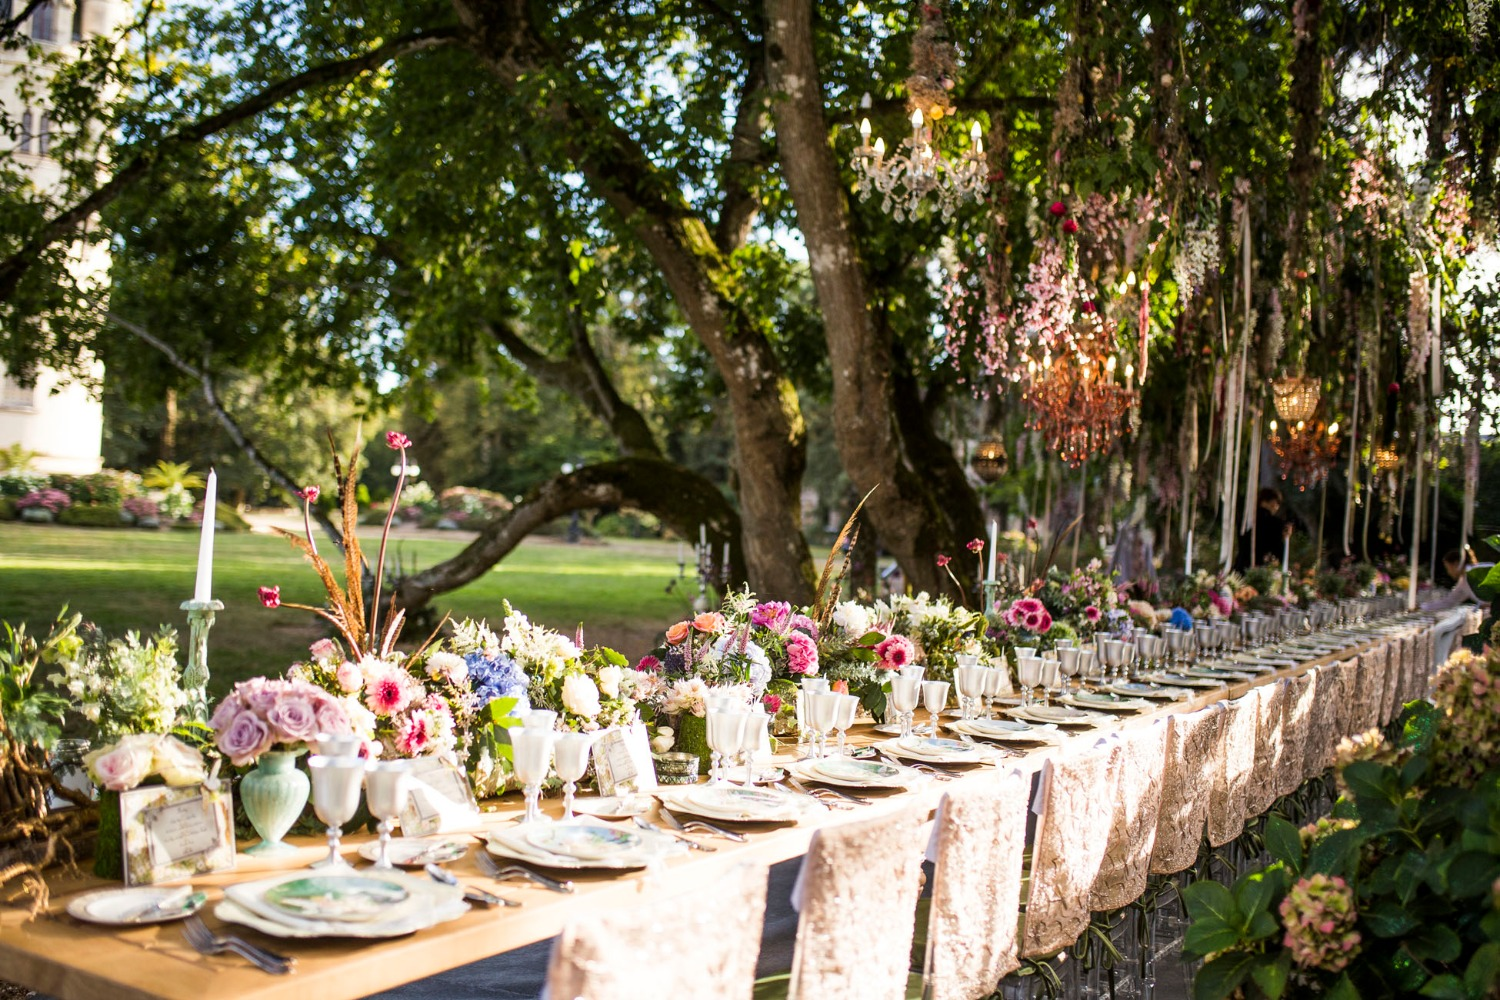 Midsummers Night's Dream wedding table